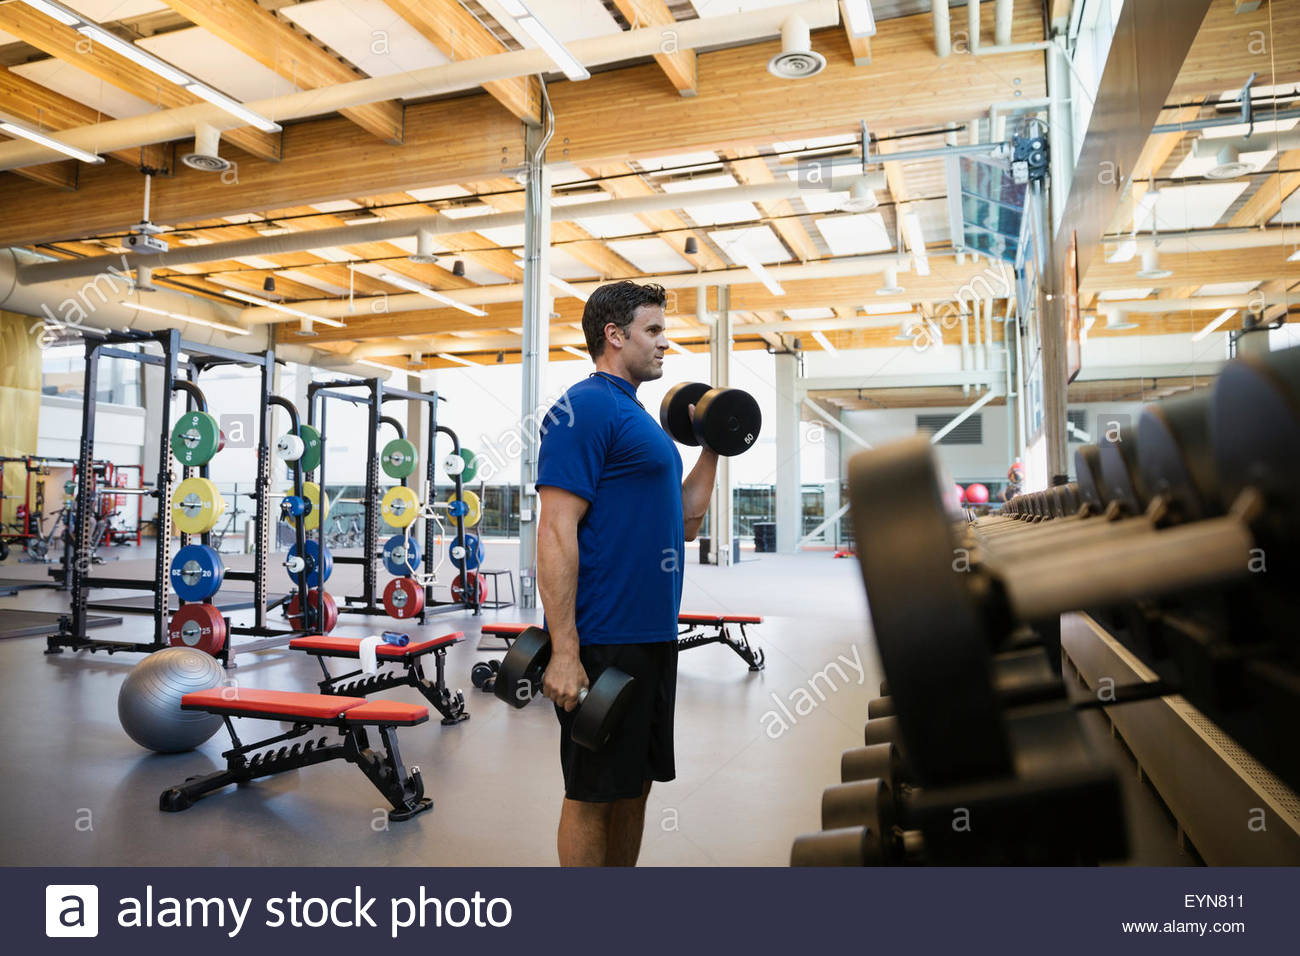 Man doing biceps haltère at gym Photo Stock